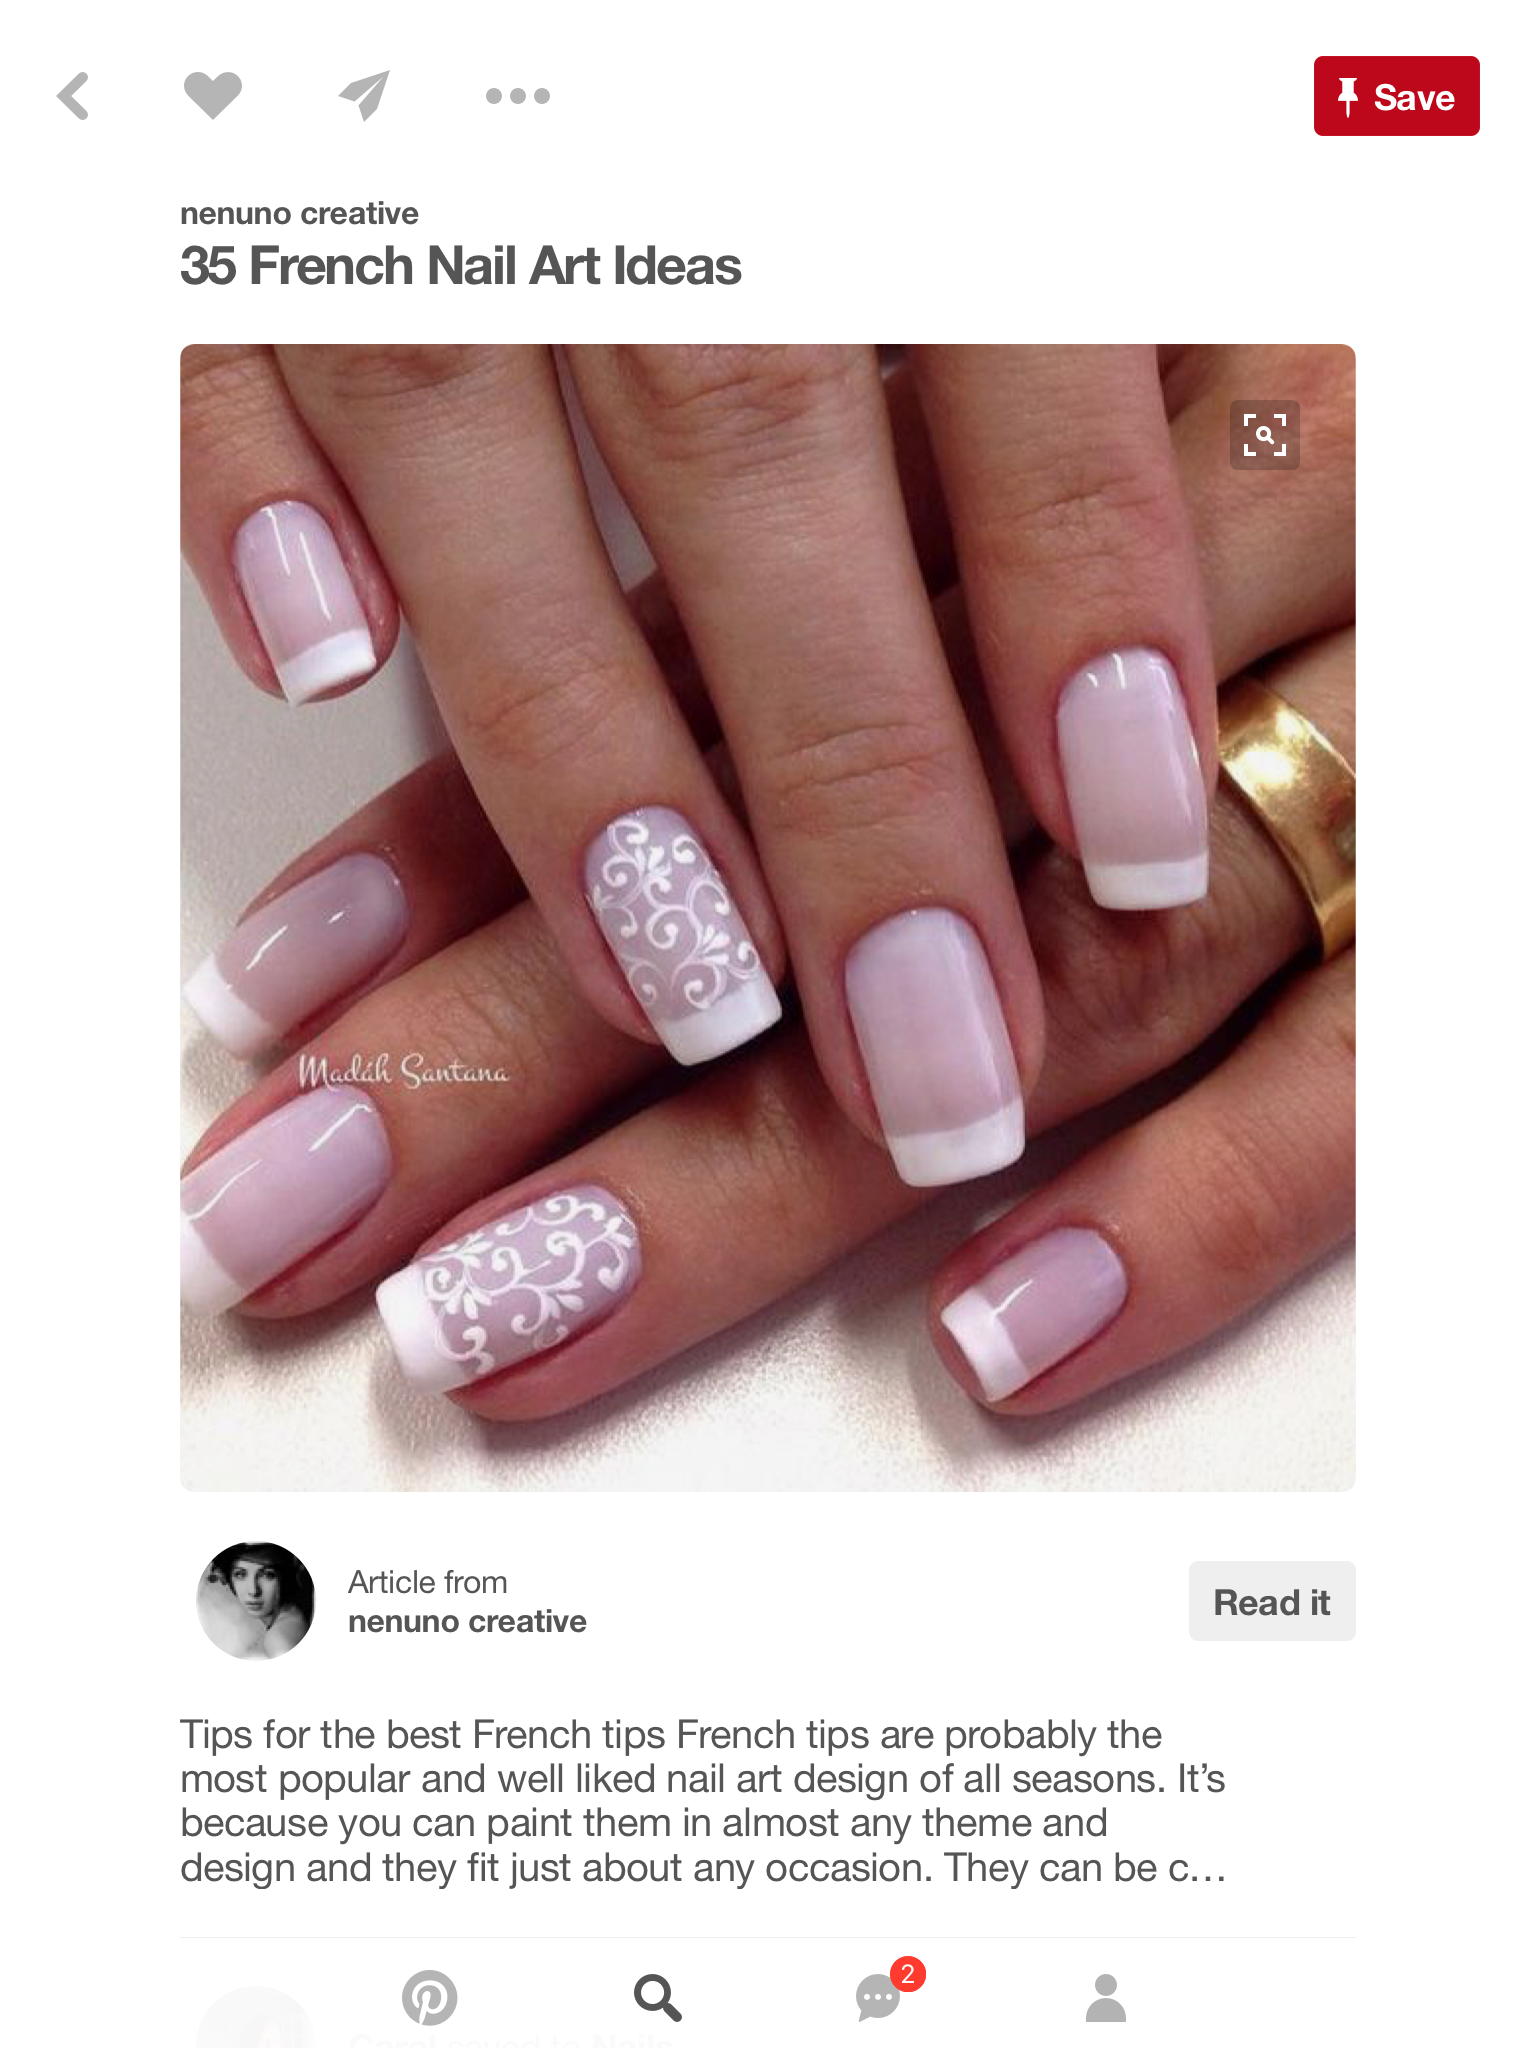 Pin by Upmarket Nails on Nails - love em! | Pinterest